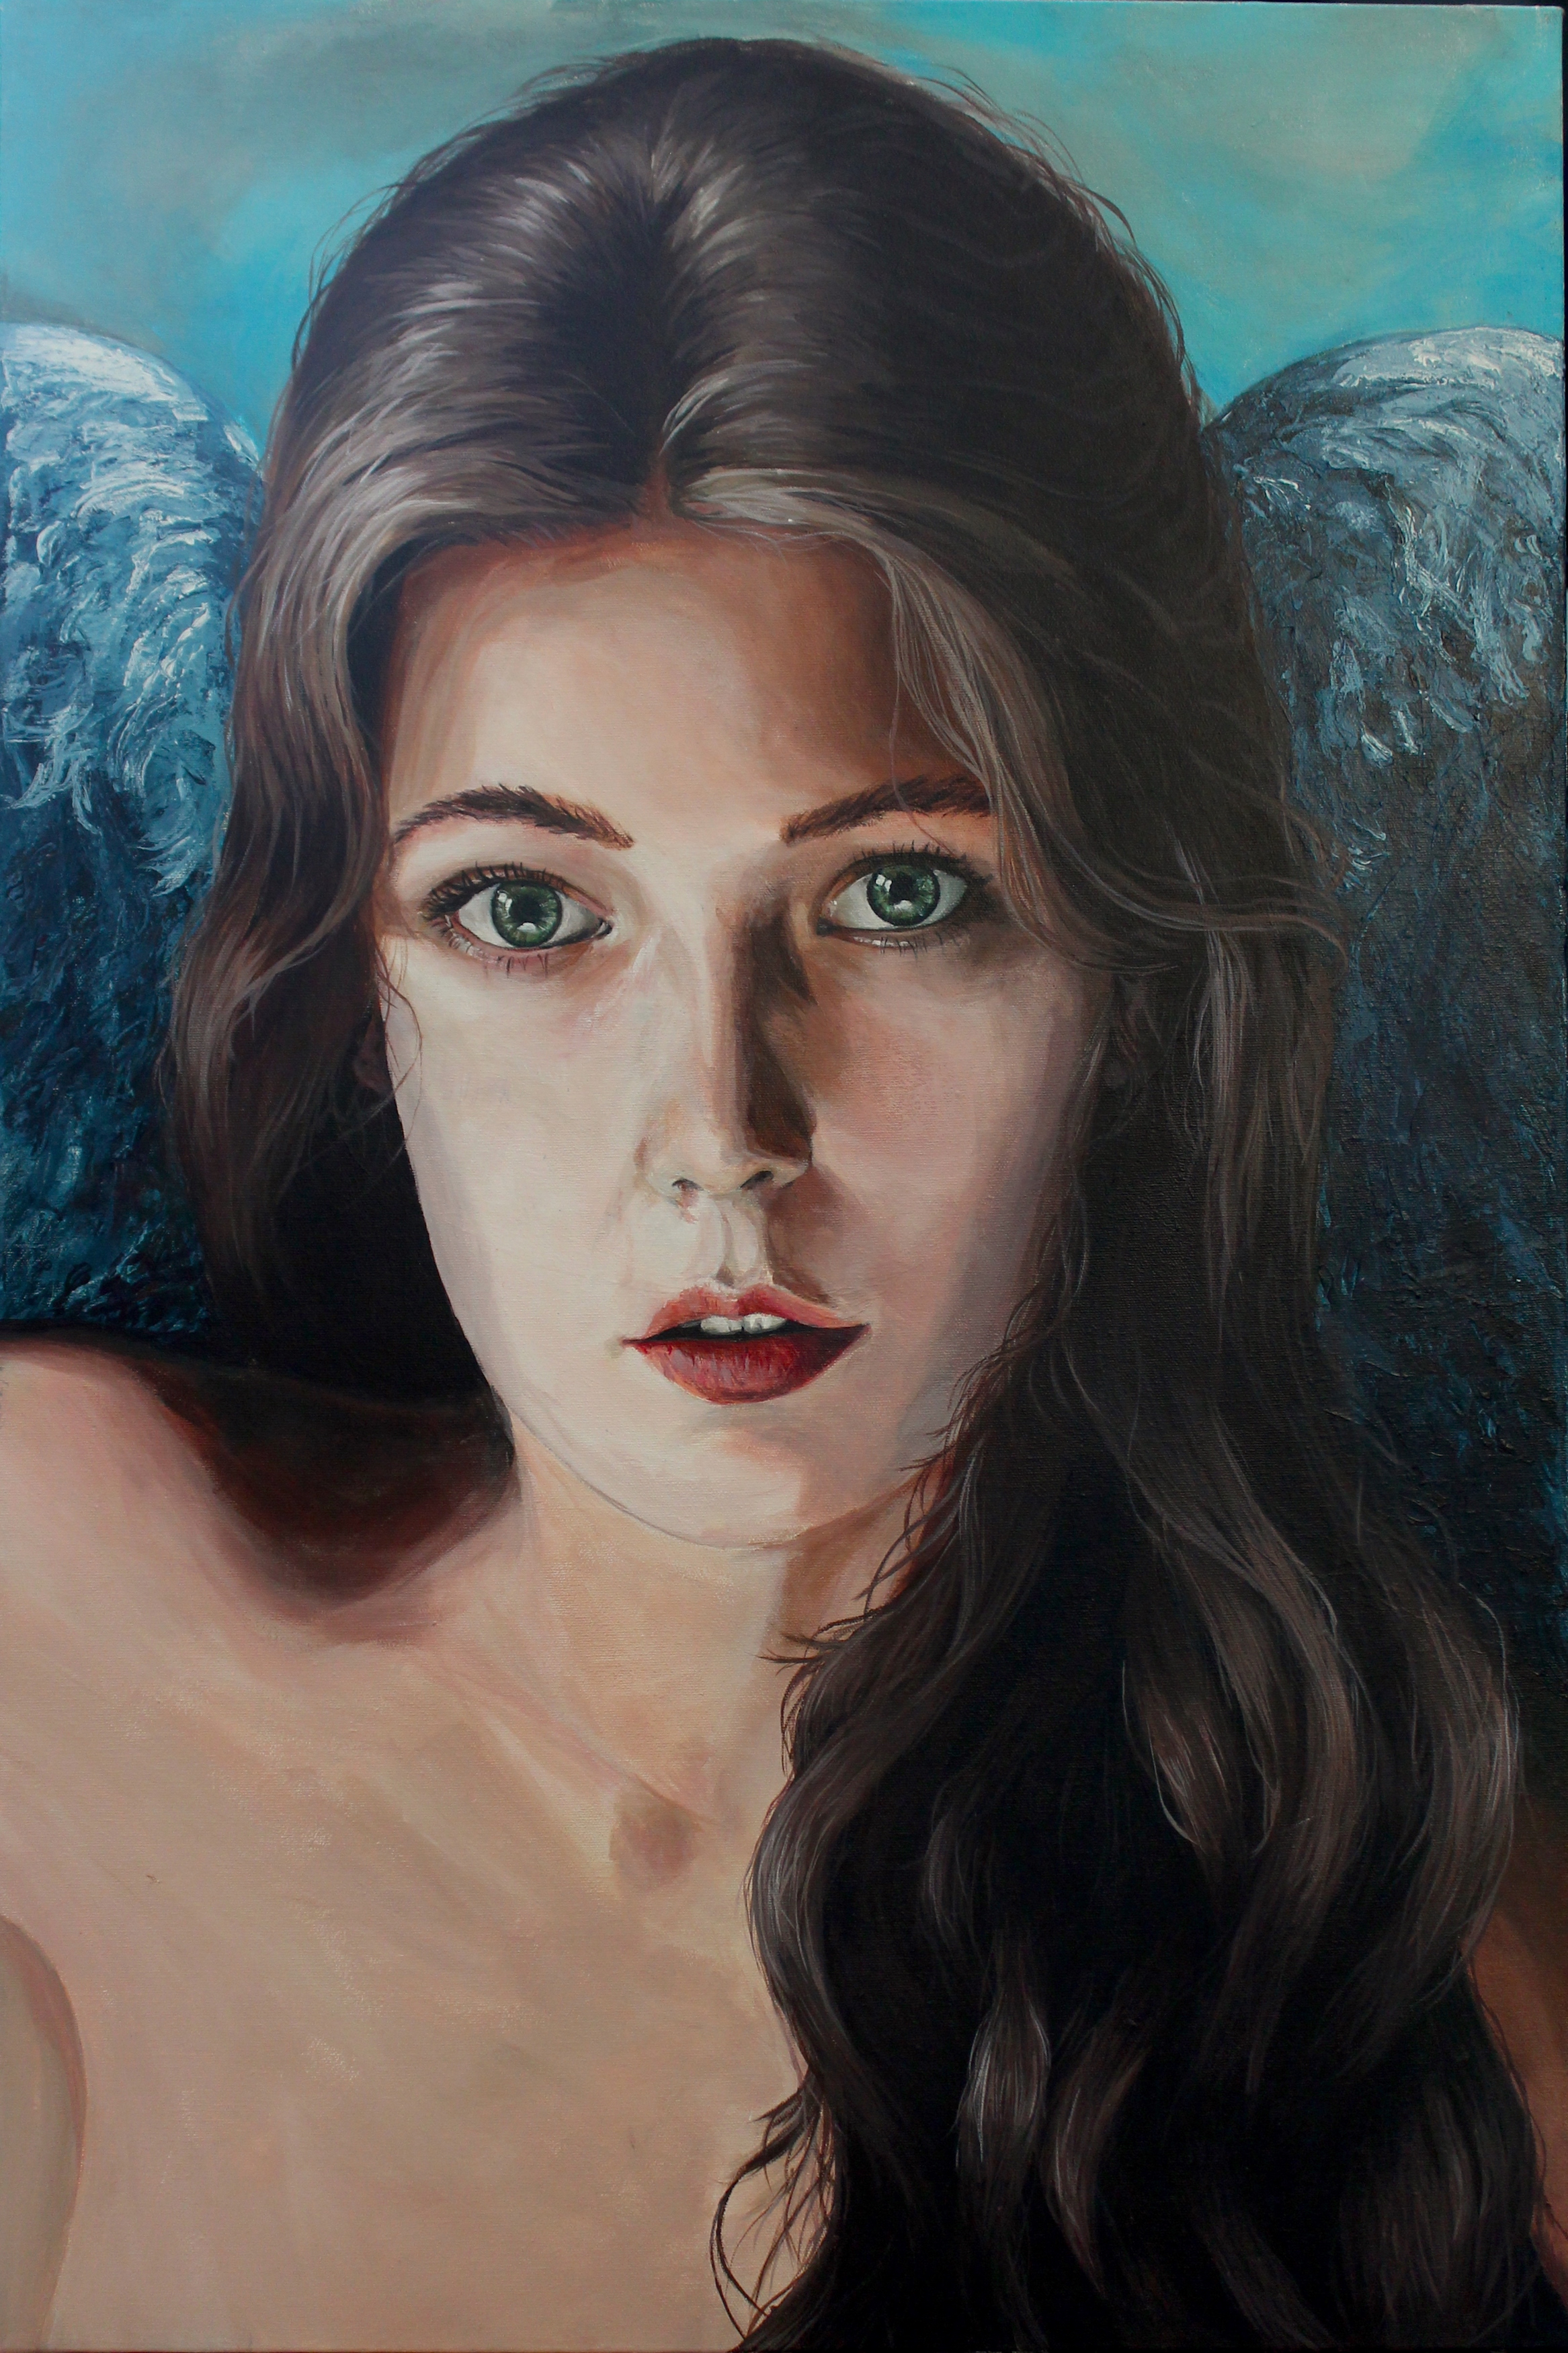 Angel 2 artwork by Matthew Day - art listed for sale on Artplode